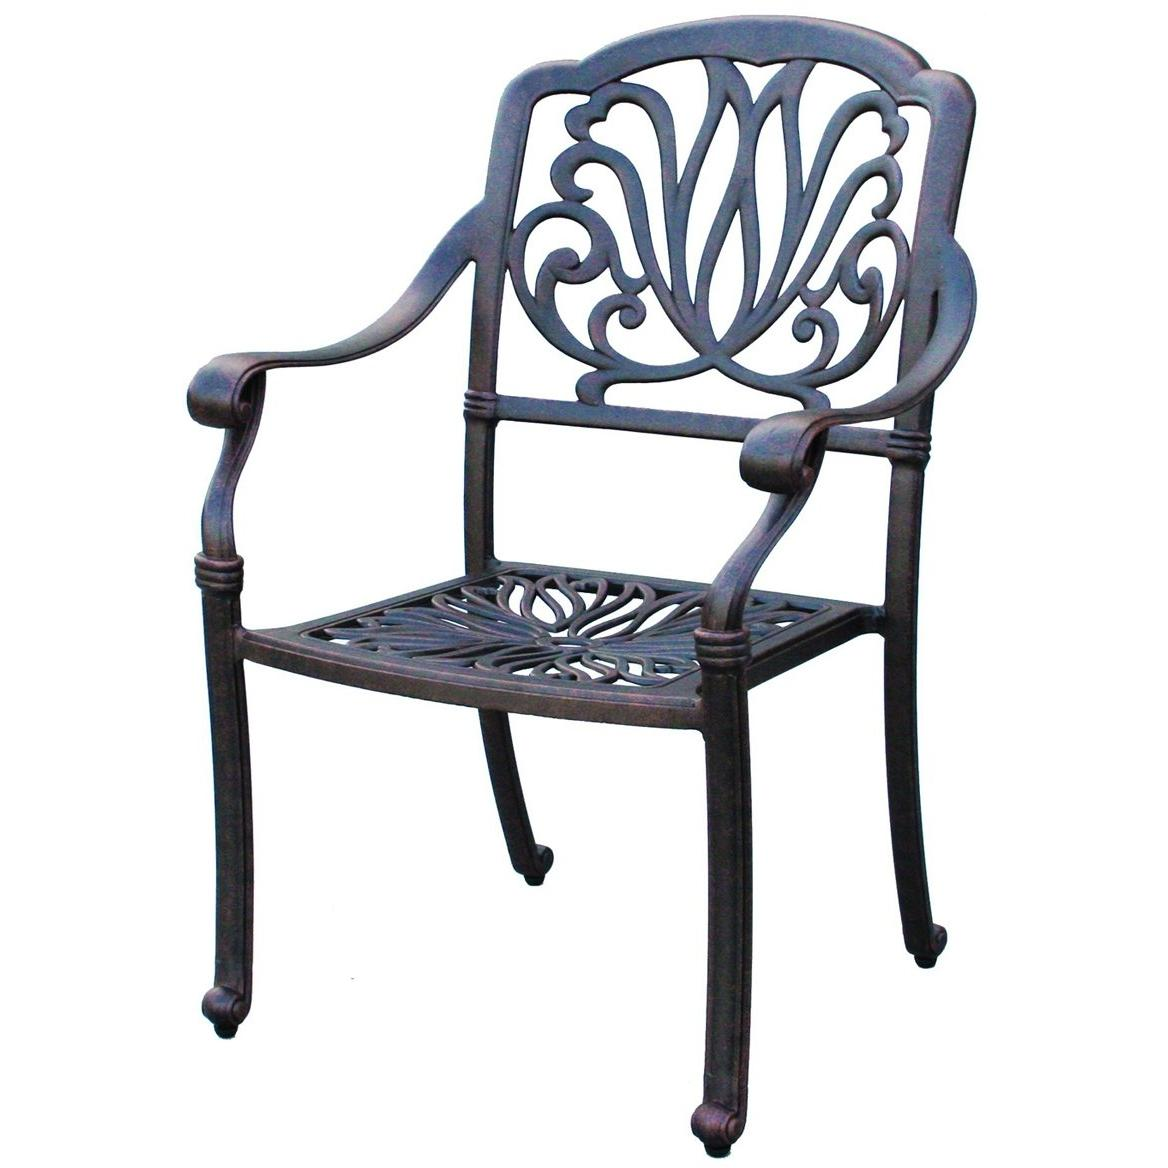 Darlee Elisabeth Cast Aluminum Outdoor Patio Dining Chair With Cushion - Antique Bronze